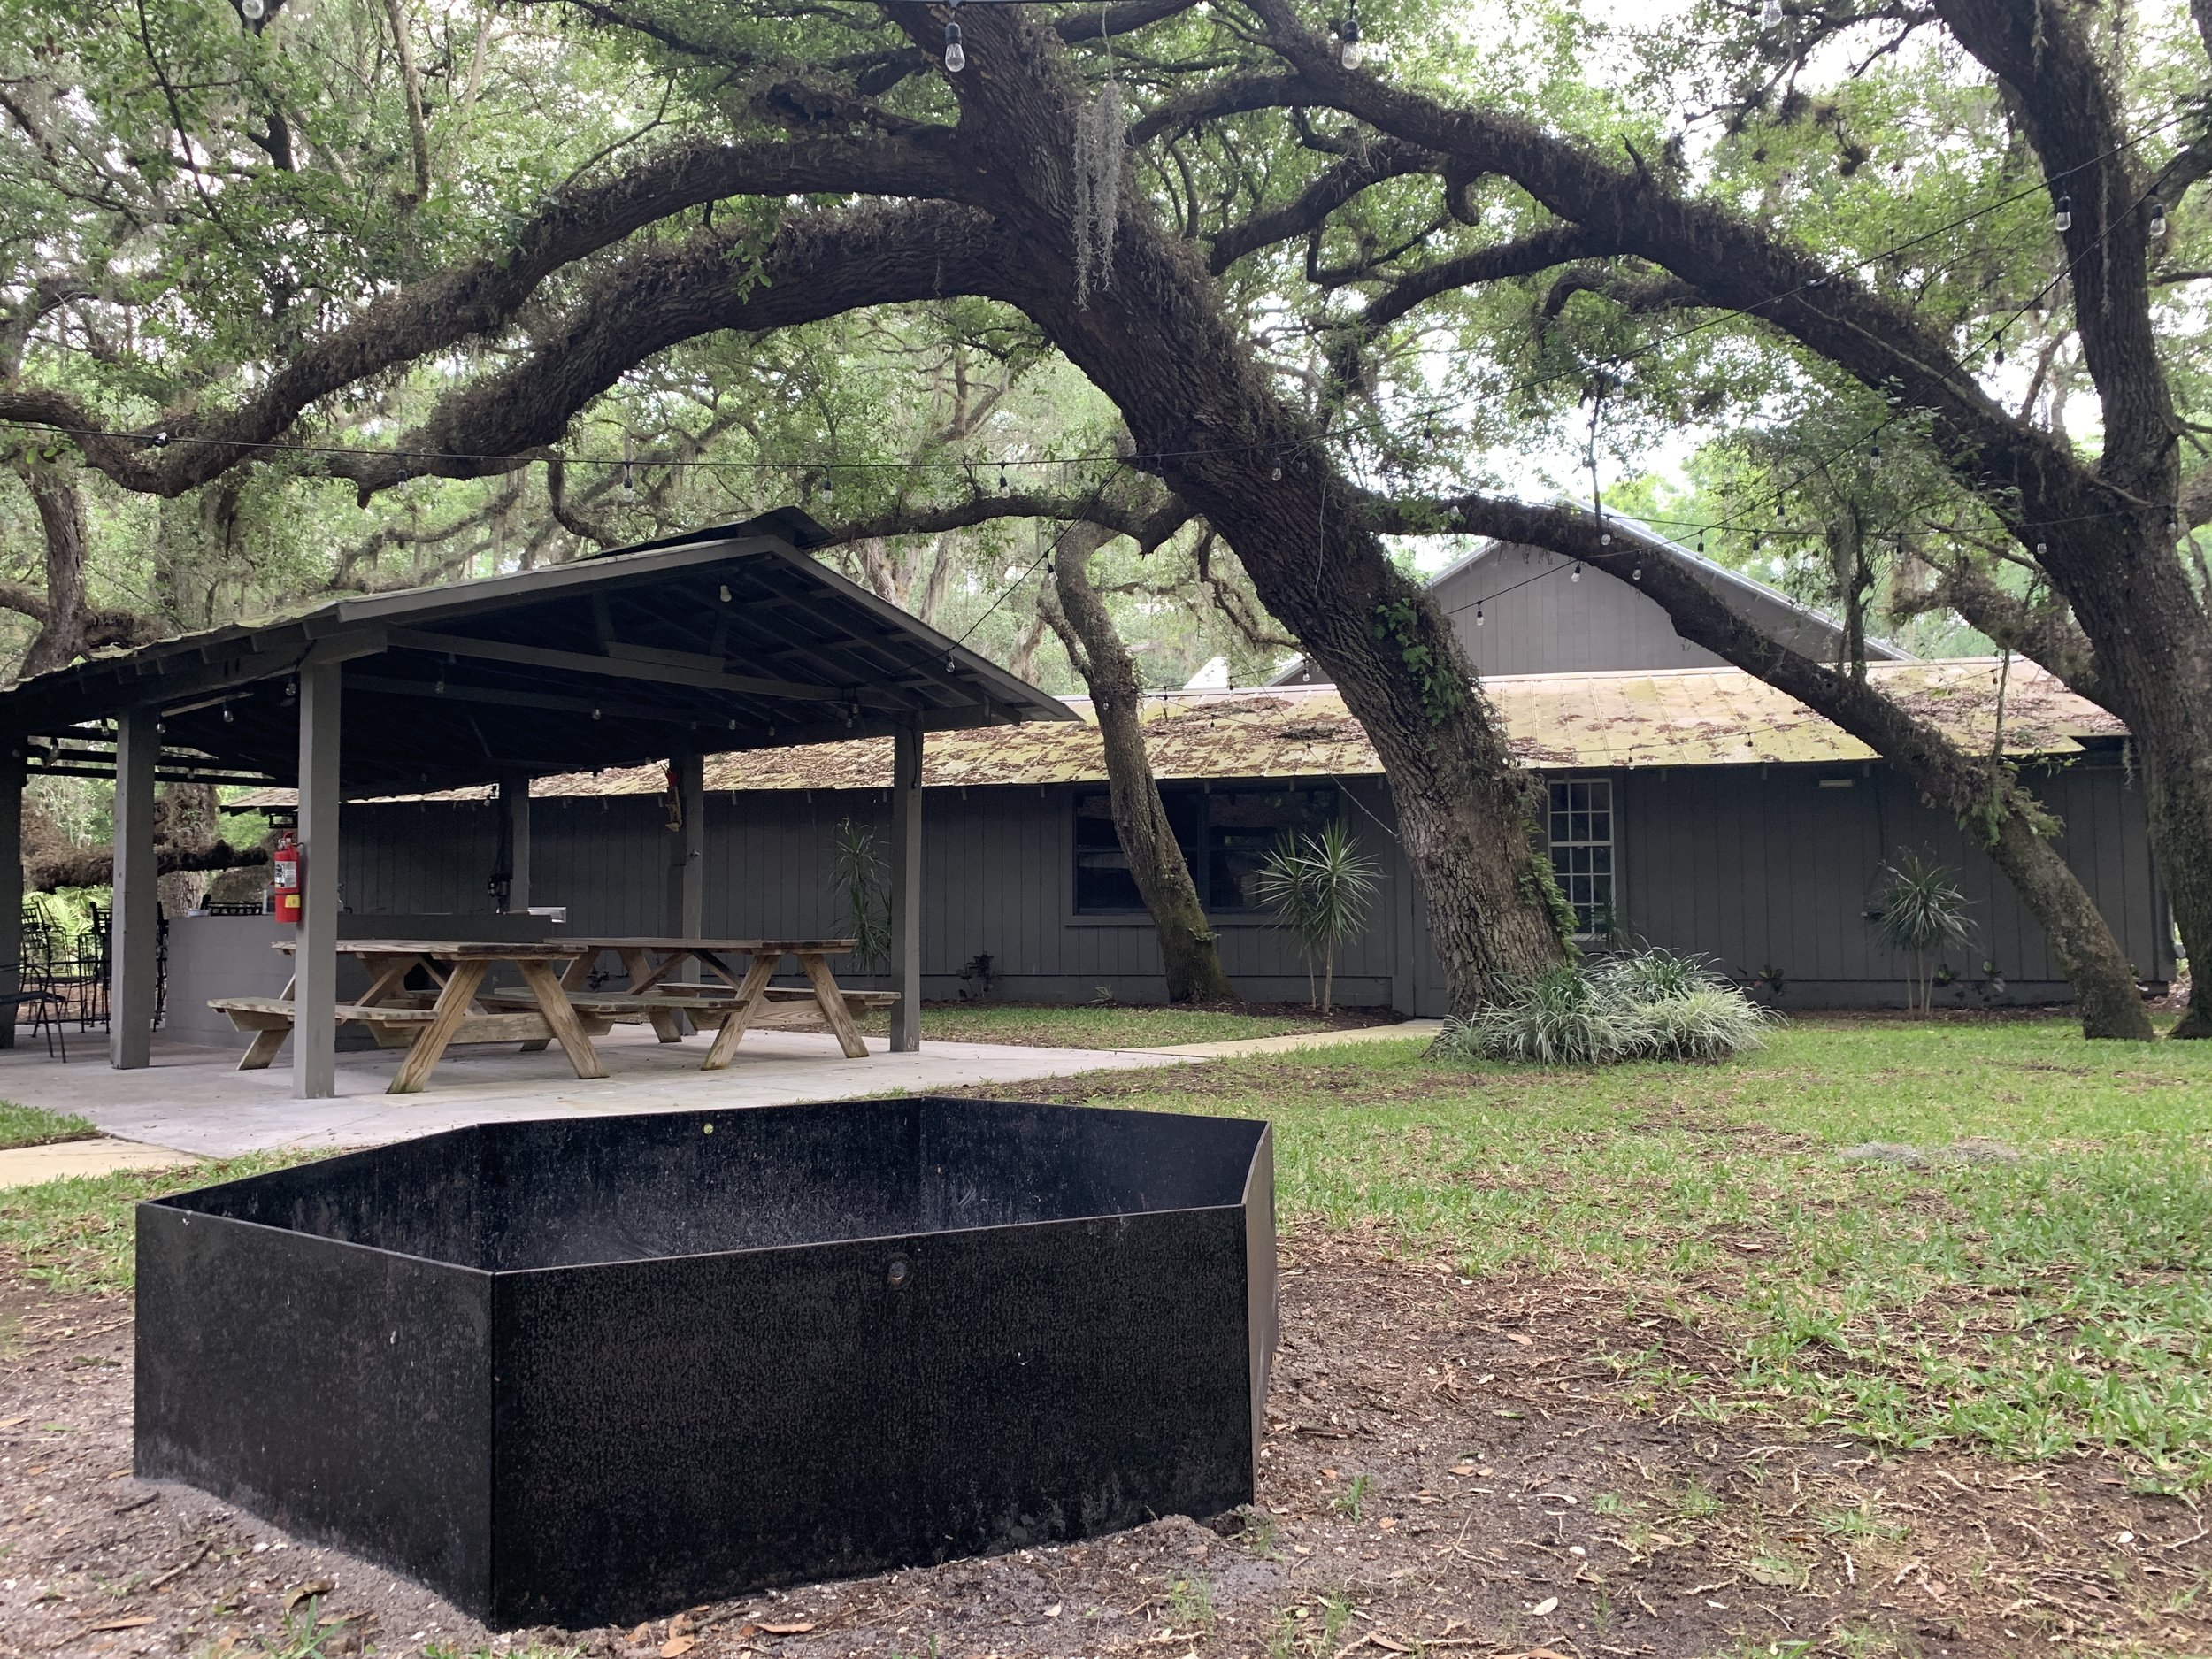 South-Florida-Hunting-Lodge-Outfitters.JPG